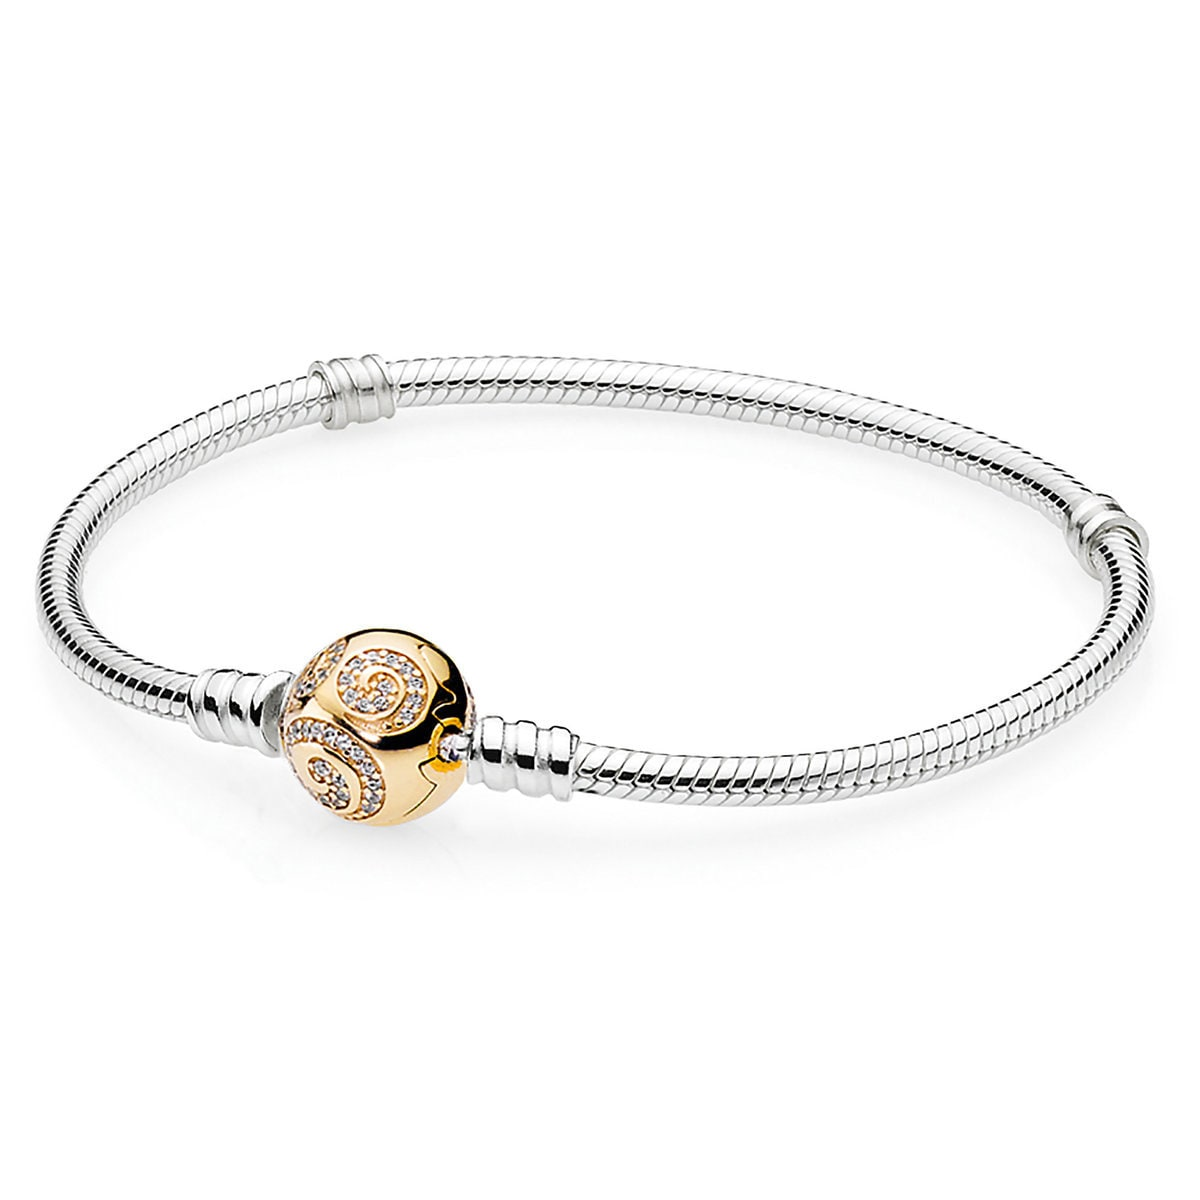 aace32ca2 Product Image of Mickey Mouse Golden Swirl Bracelet by Pandora Jewelry # 1